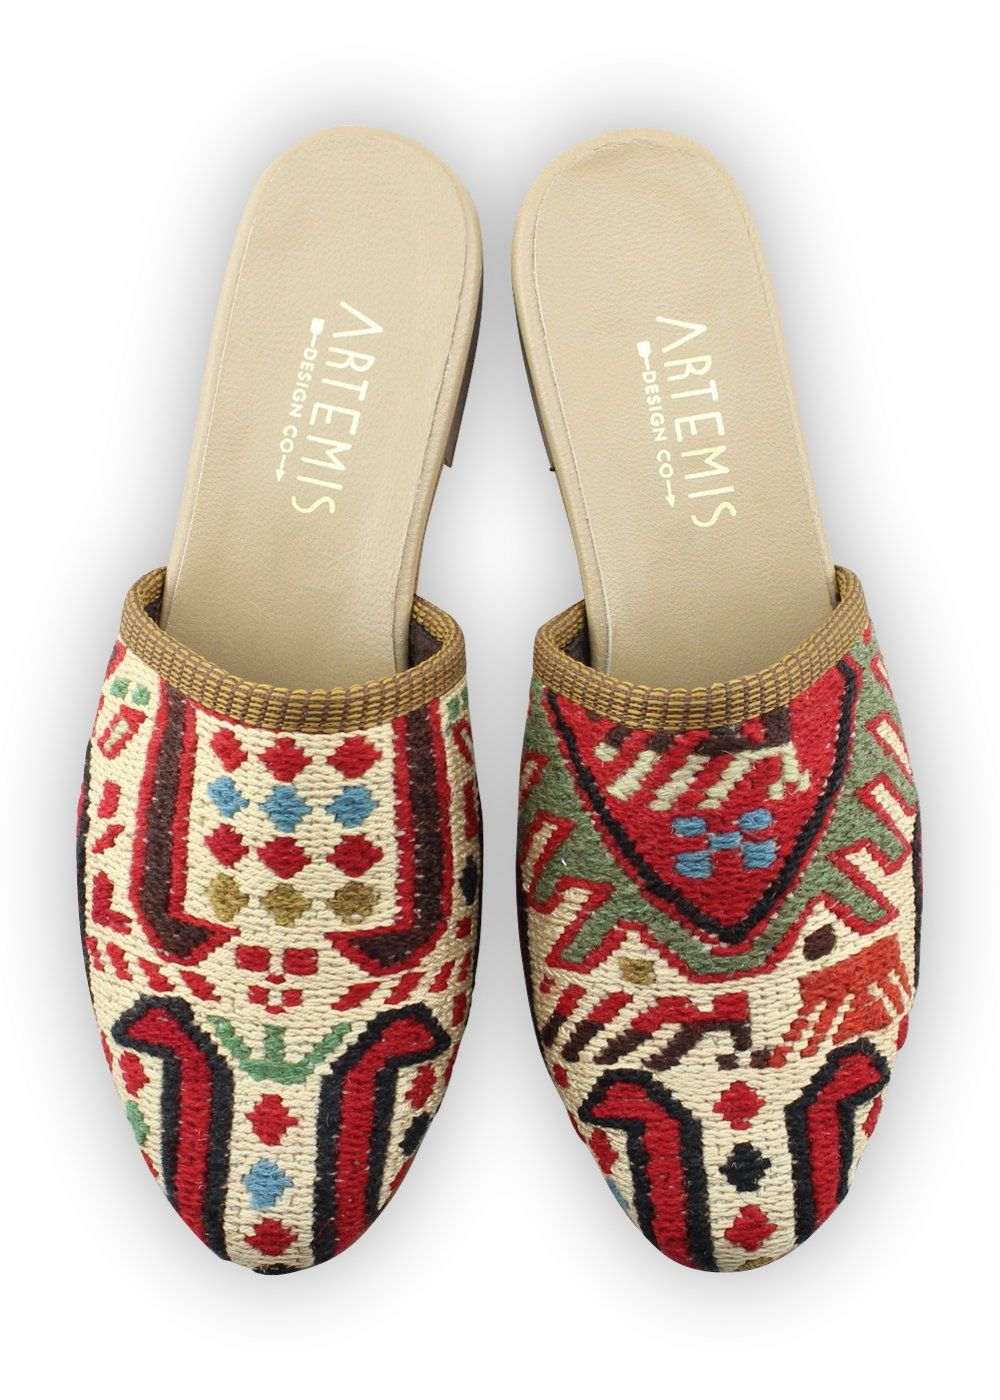 Archived Women's - Women's Sumak Kilim Slides - Size 39